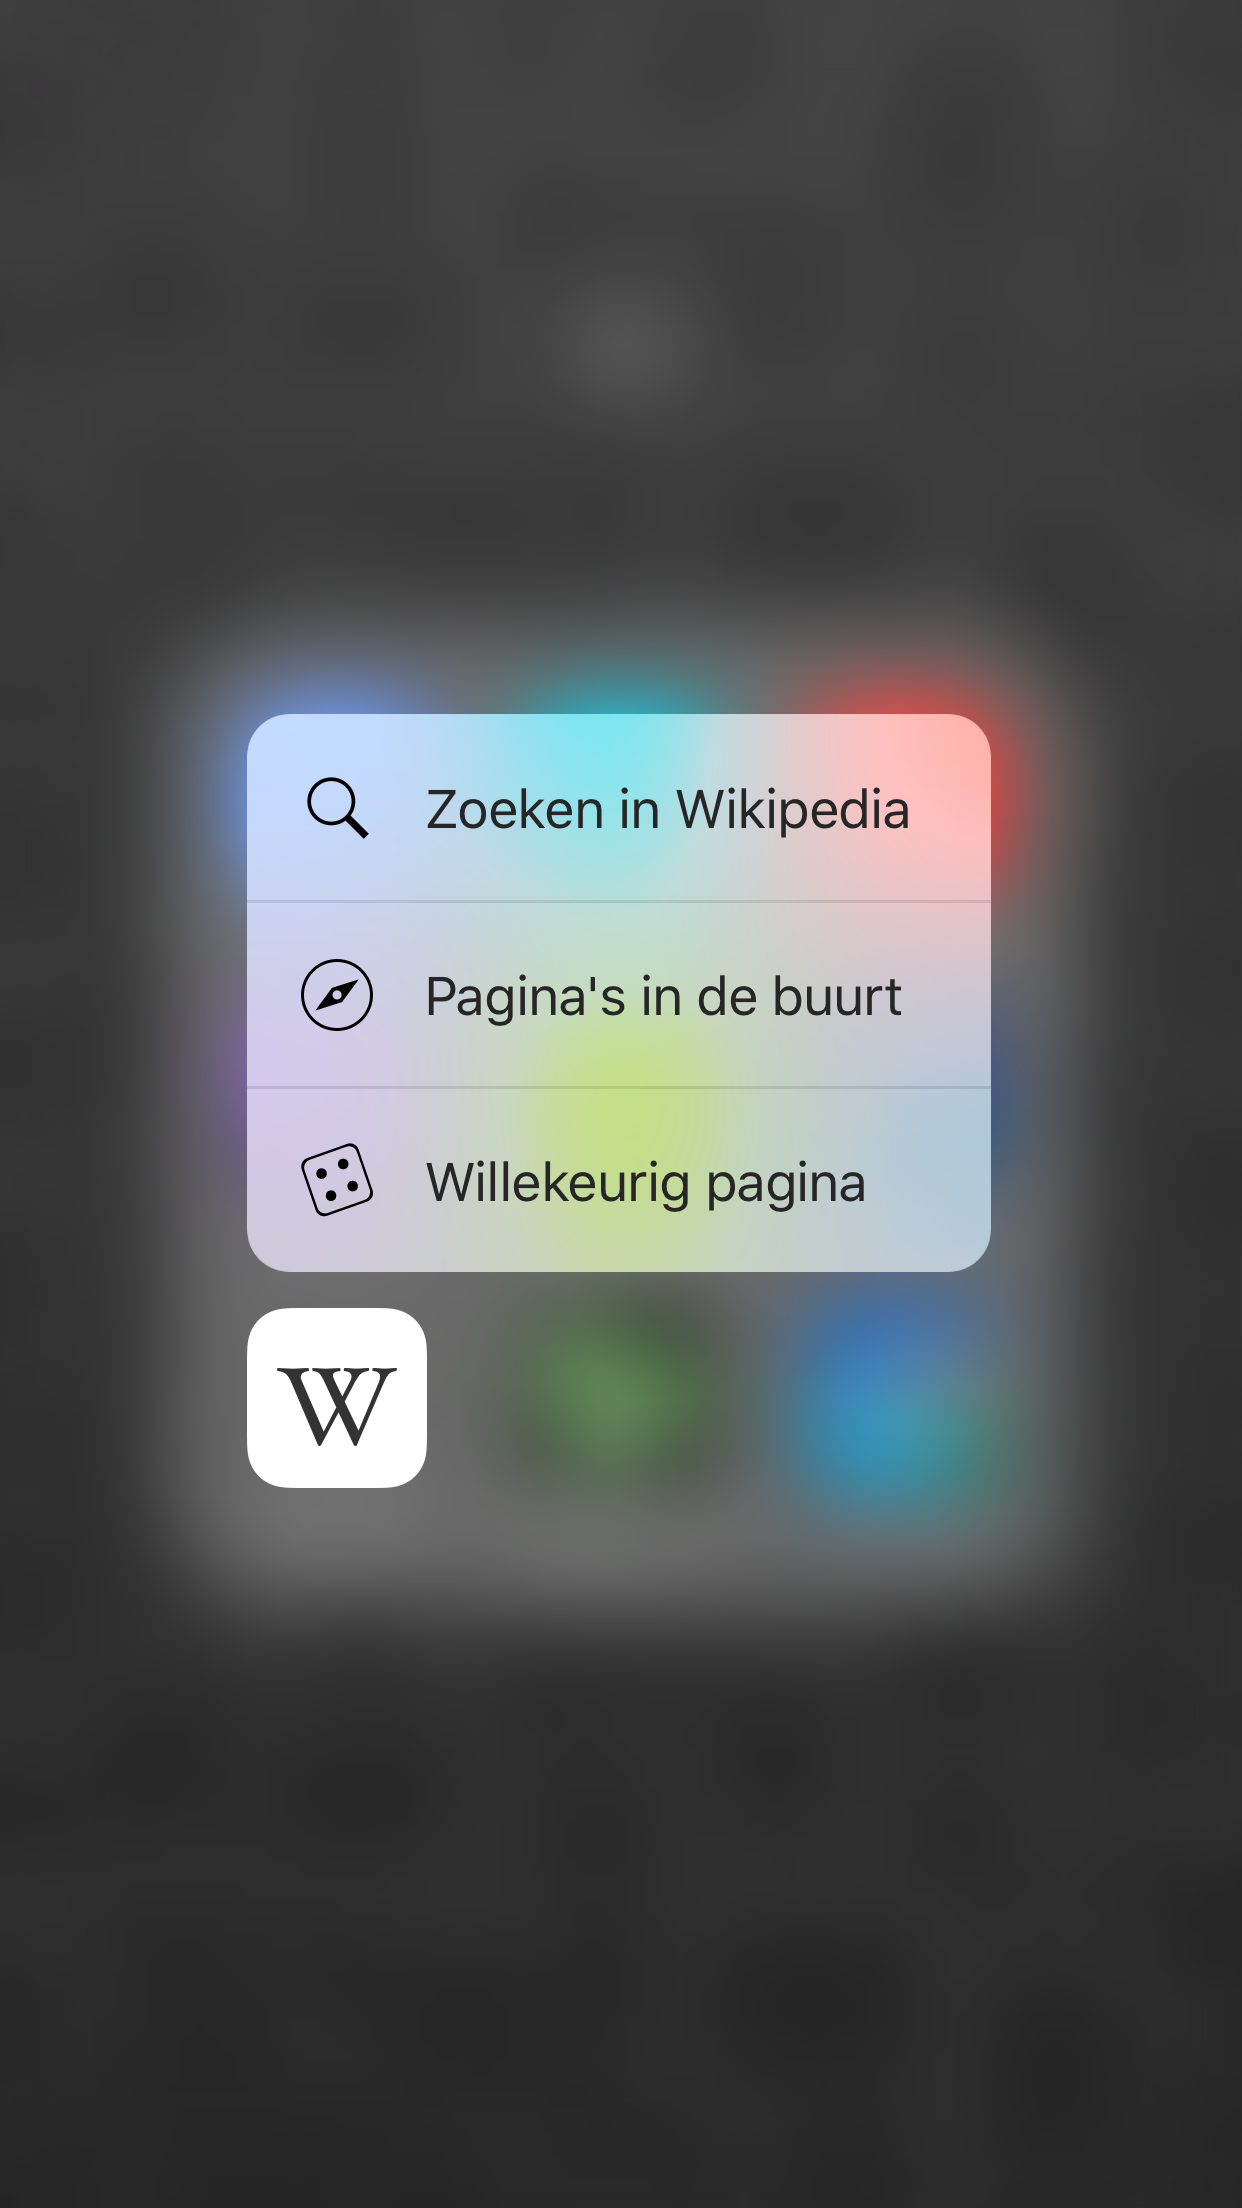 3D Touch in Wikipedia.